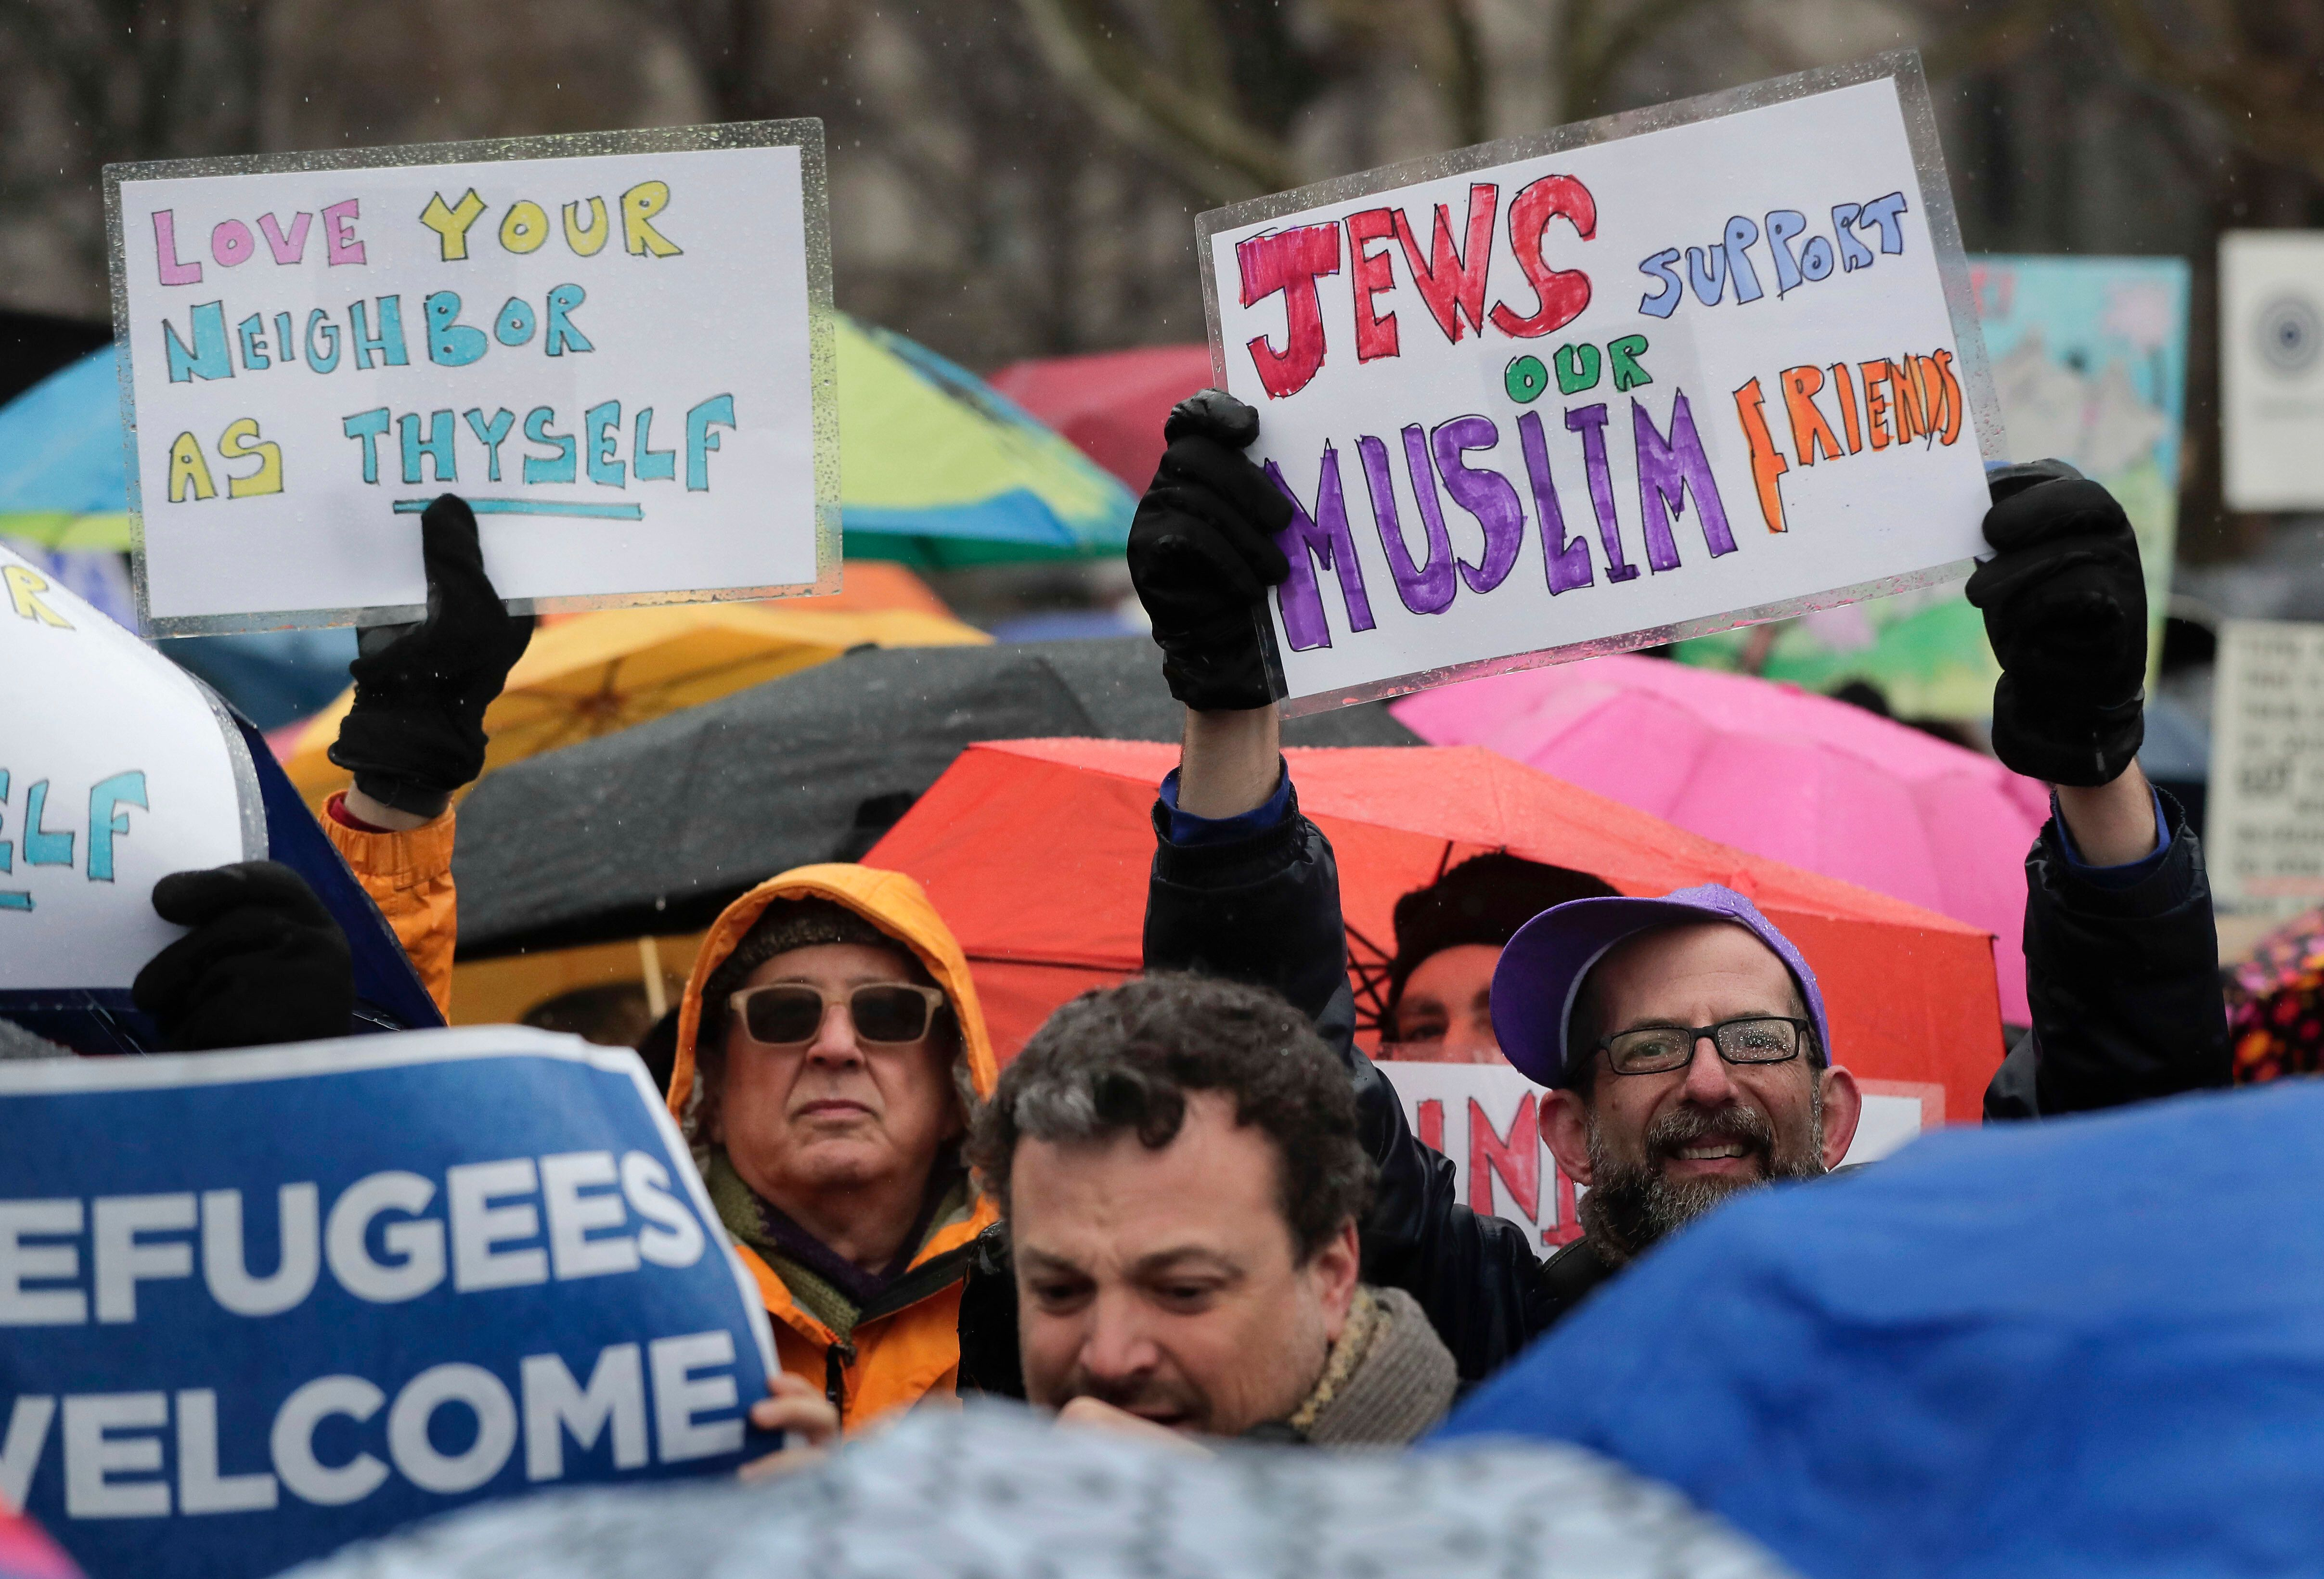 Demonstrators hold up signs during a rally in Battery Park organized by the Hebrew Immigrant Aid Society to mark a National D